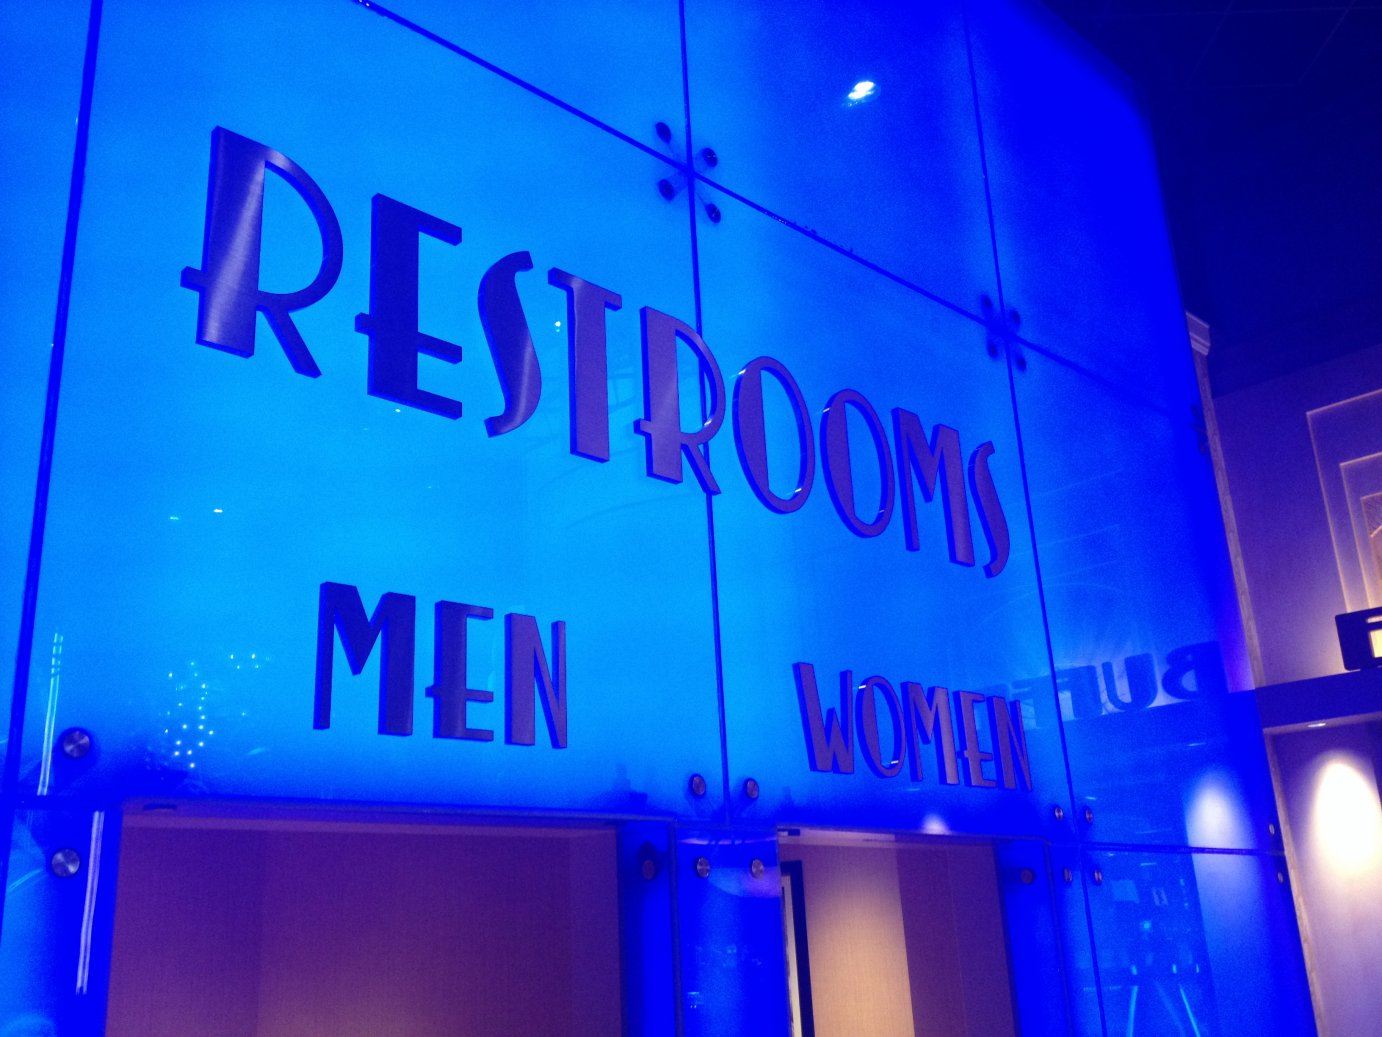 Men, Women, Trans, Neutral? The battle over bathrooms continues in Kansas. (Photo by J. Schafer)